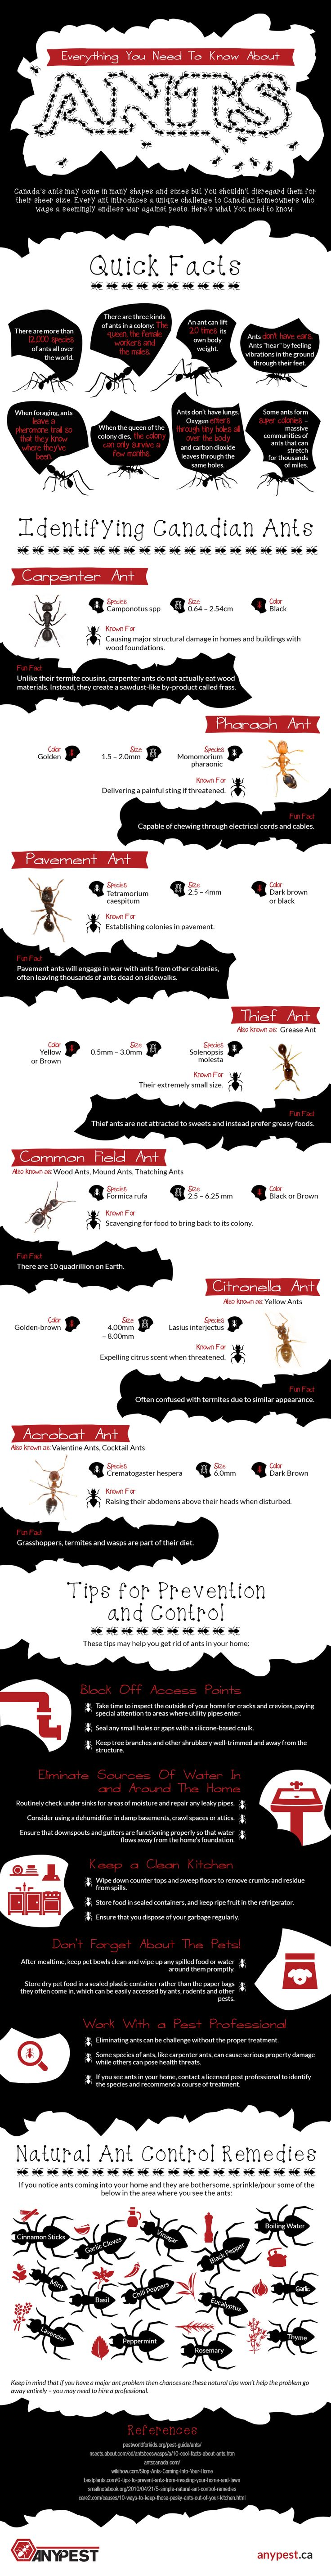 Everything You Need To Know About Ants #Infographic #Insects #Ants